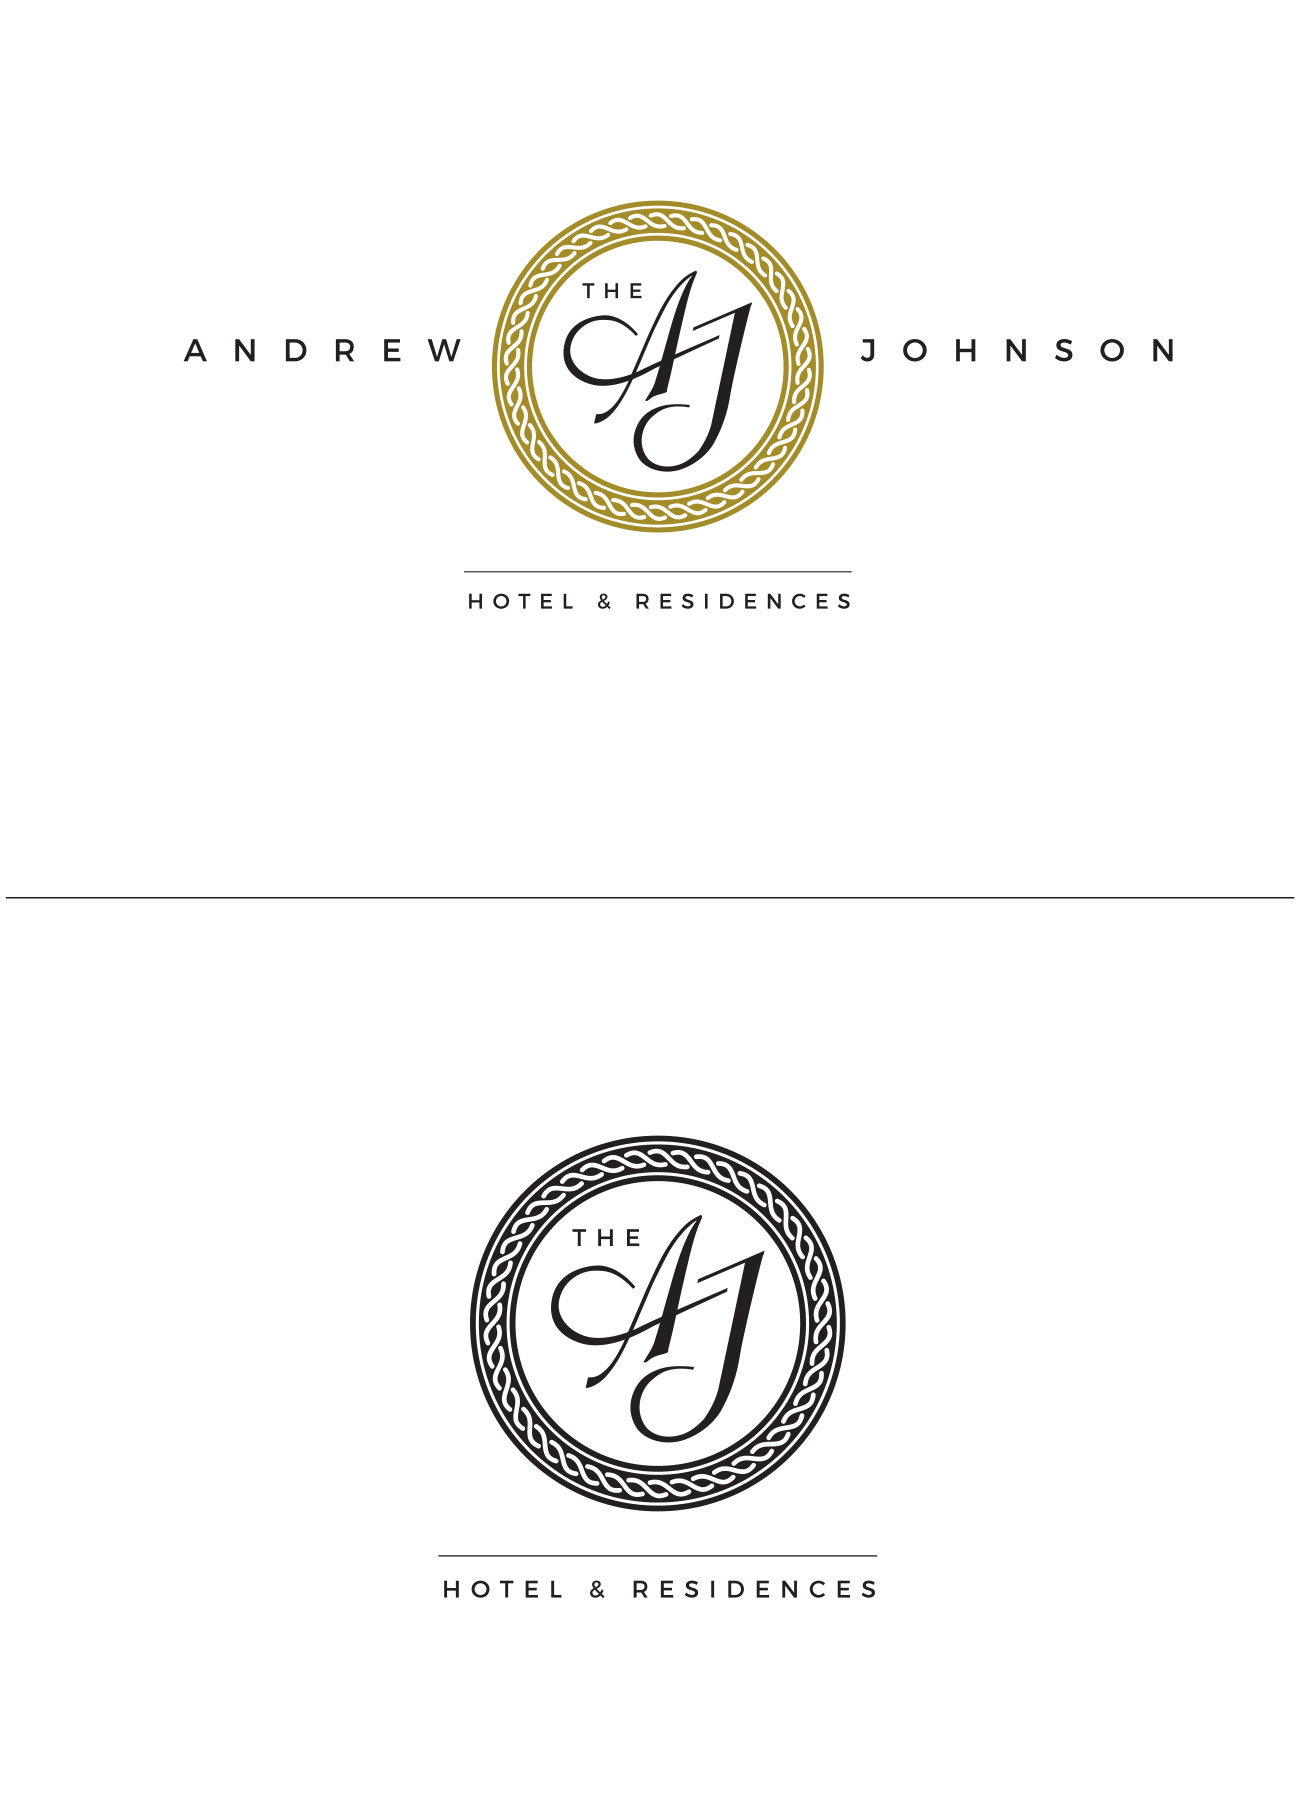 The Andrew Johnson Hotel